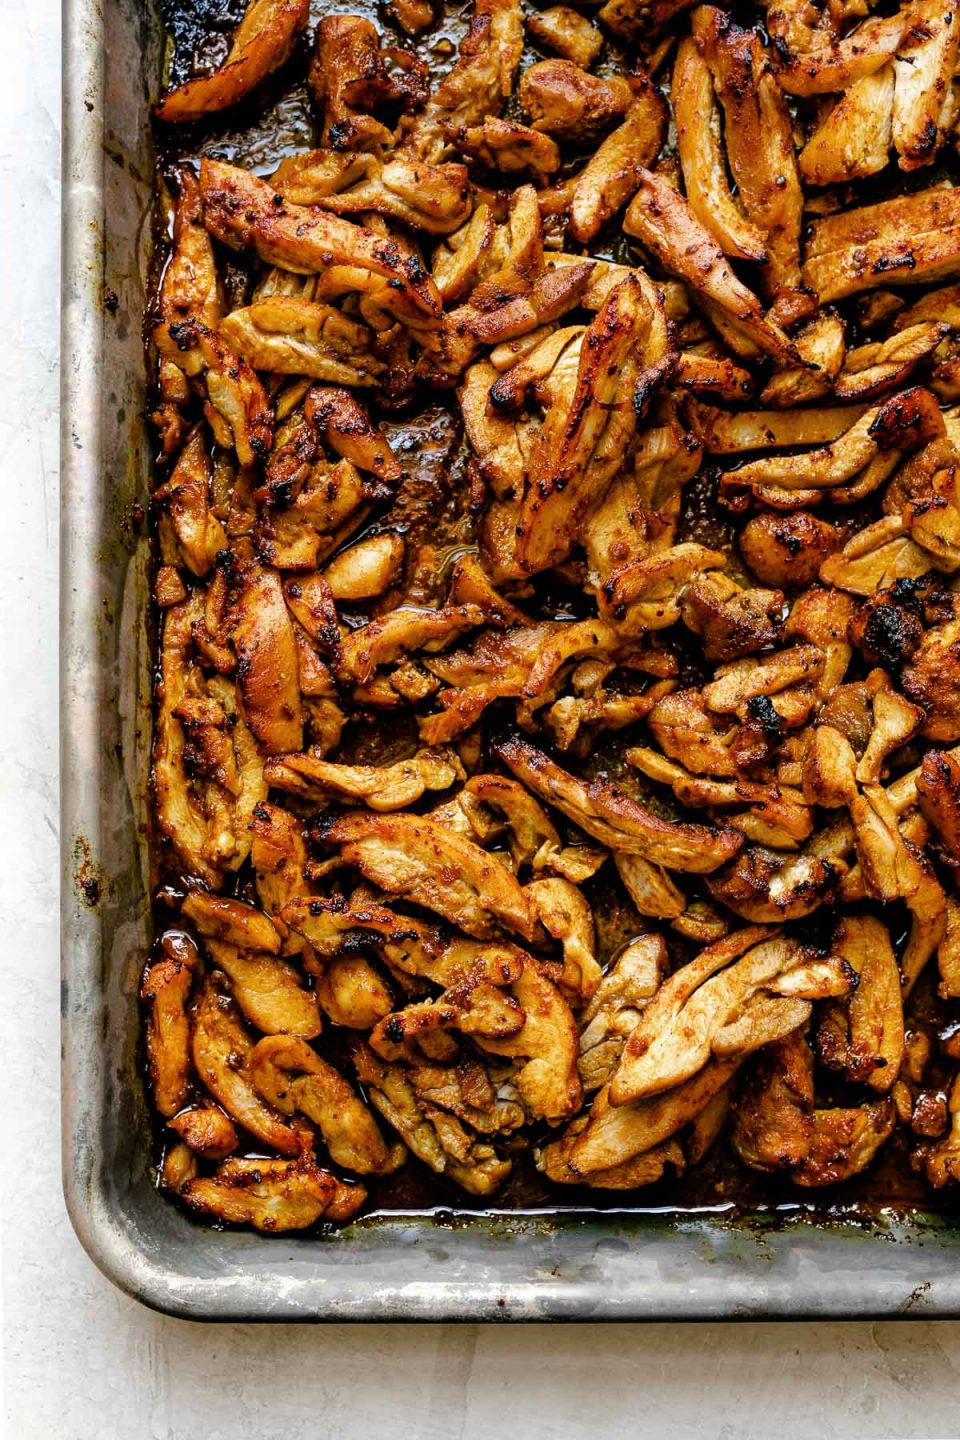 Thinly sliced broiled chicken shawarma on a small baking sheet atop a creamy cement surface.